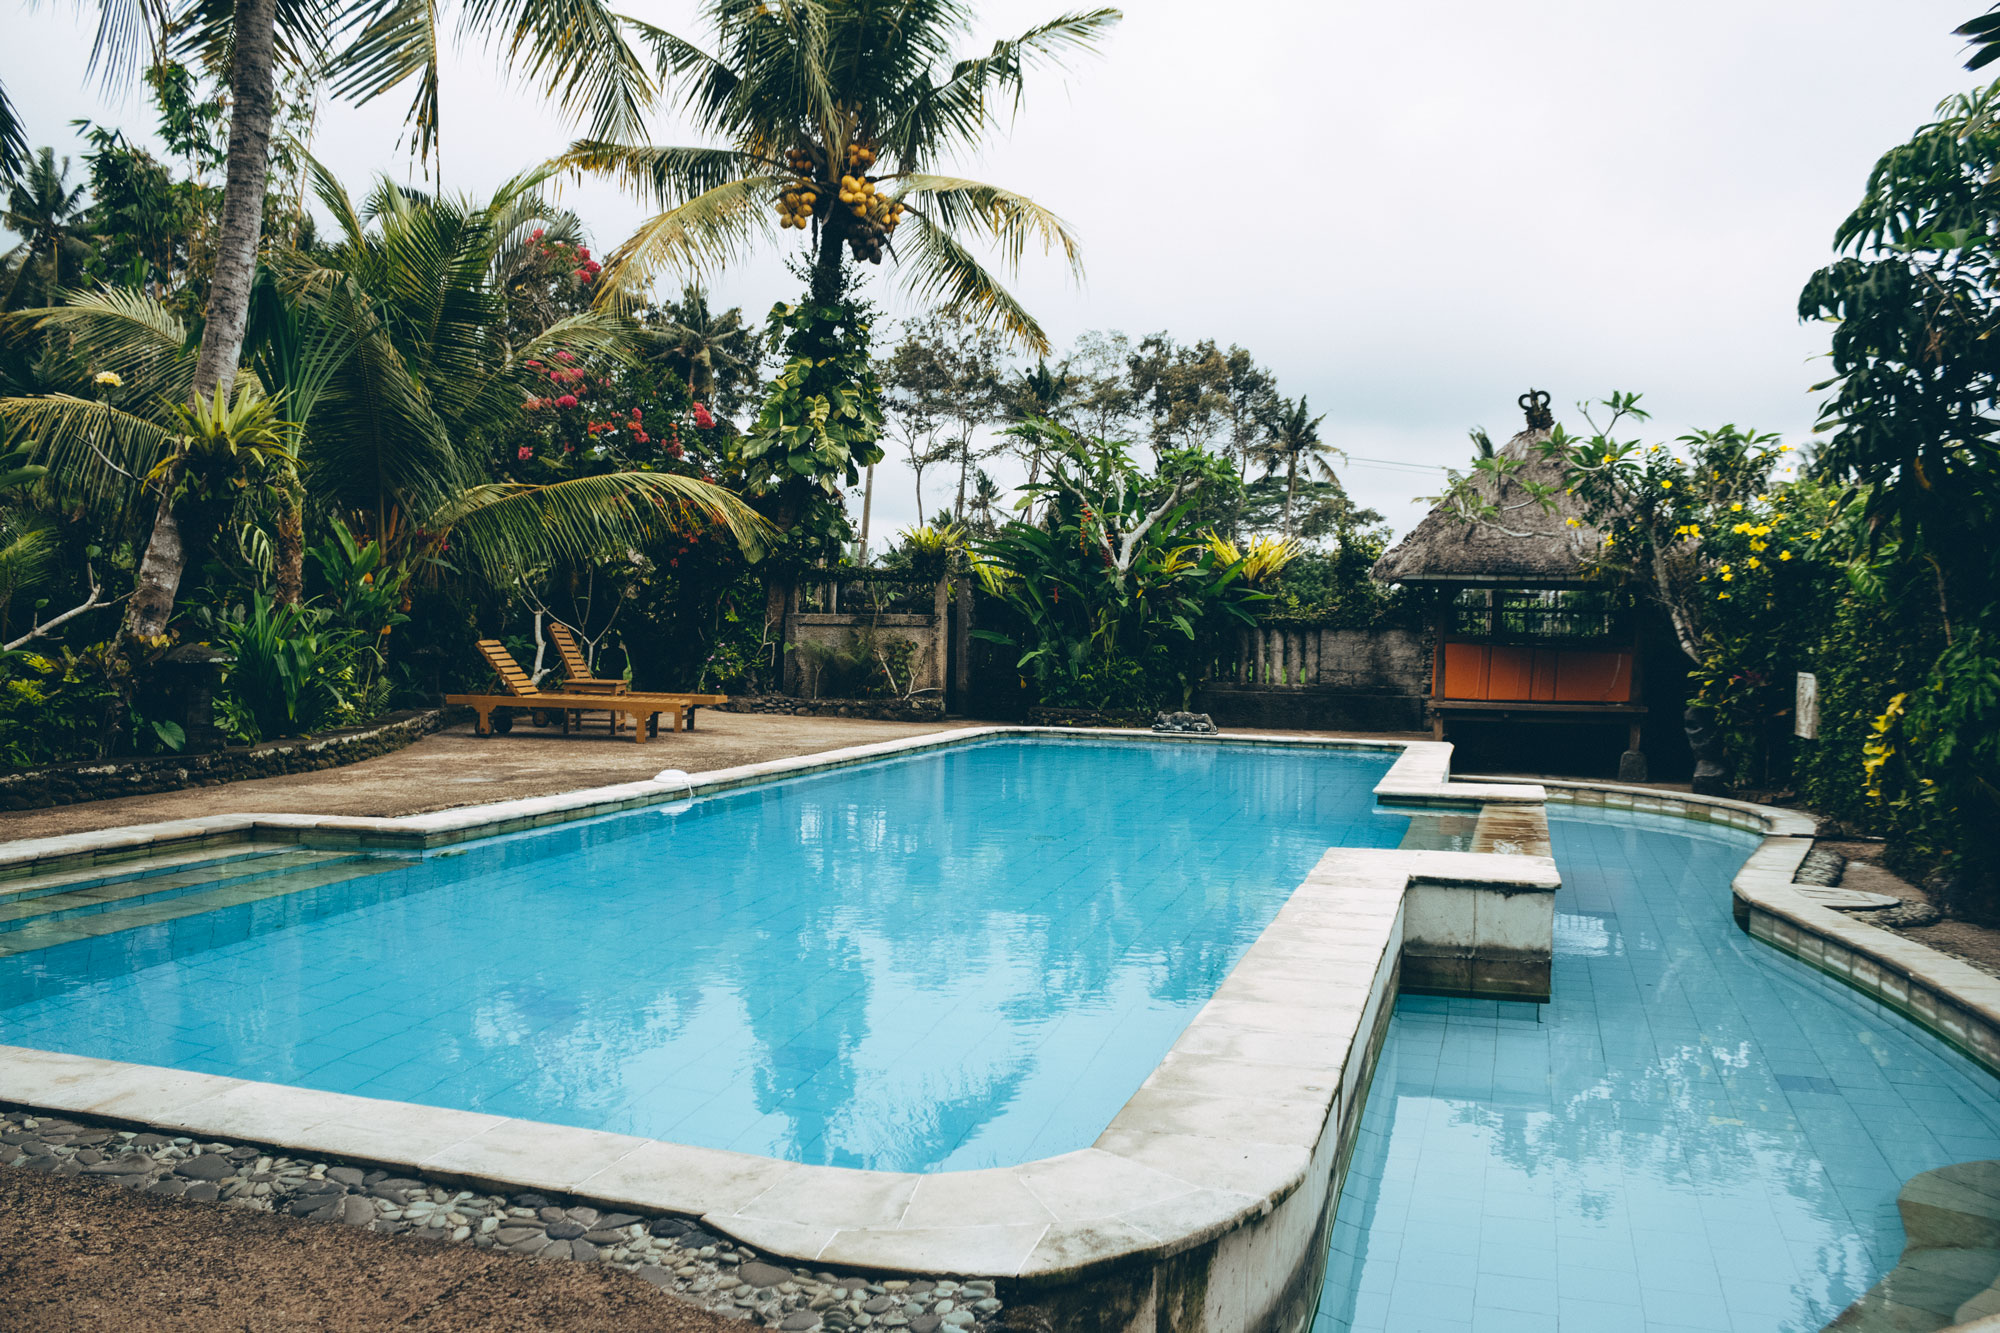 Sri Sunari Guesthouse Pool, Ubud